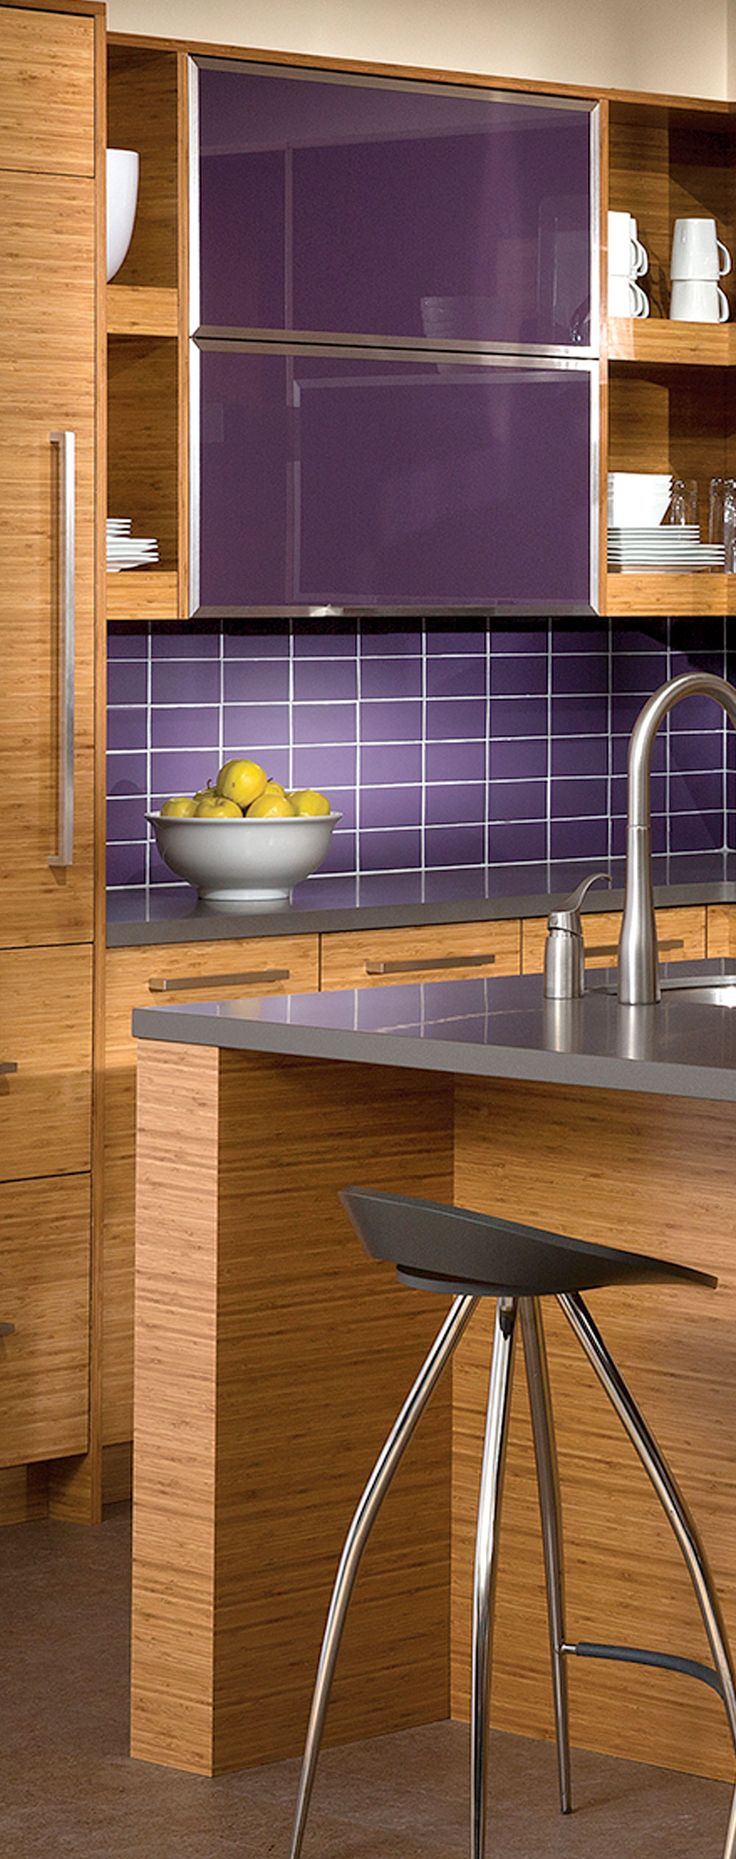 Bamboo Cabinets Kitchen 17 Best Images About Bamboo Bath Kitchen Ideas On Pinterest